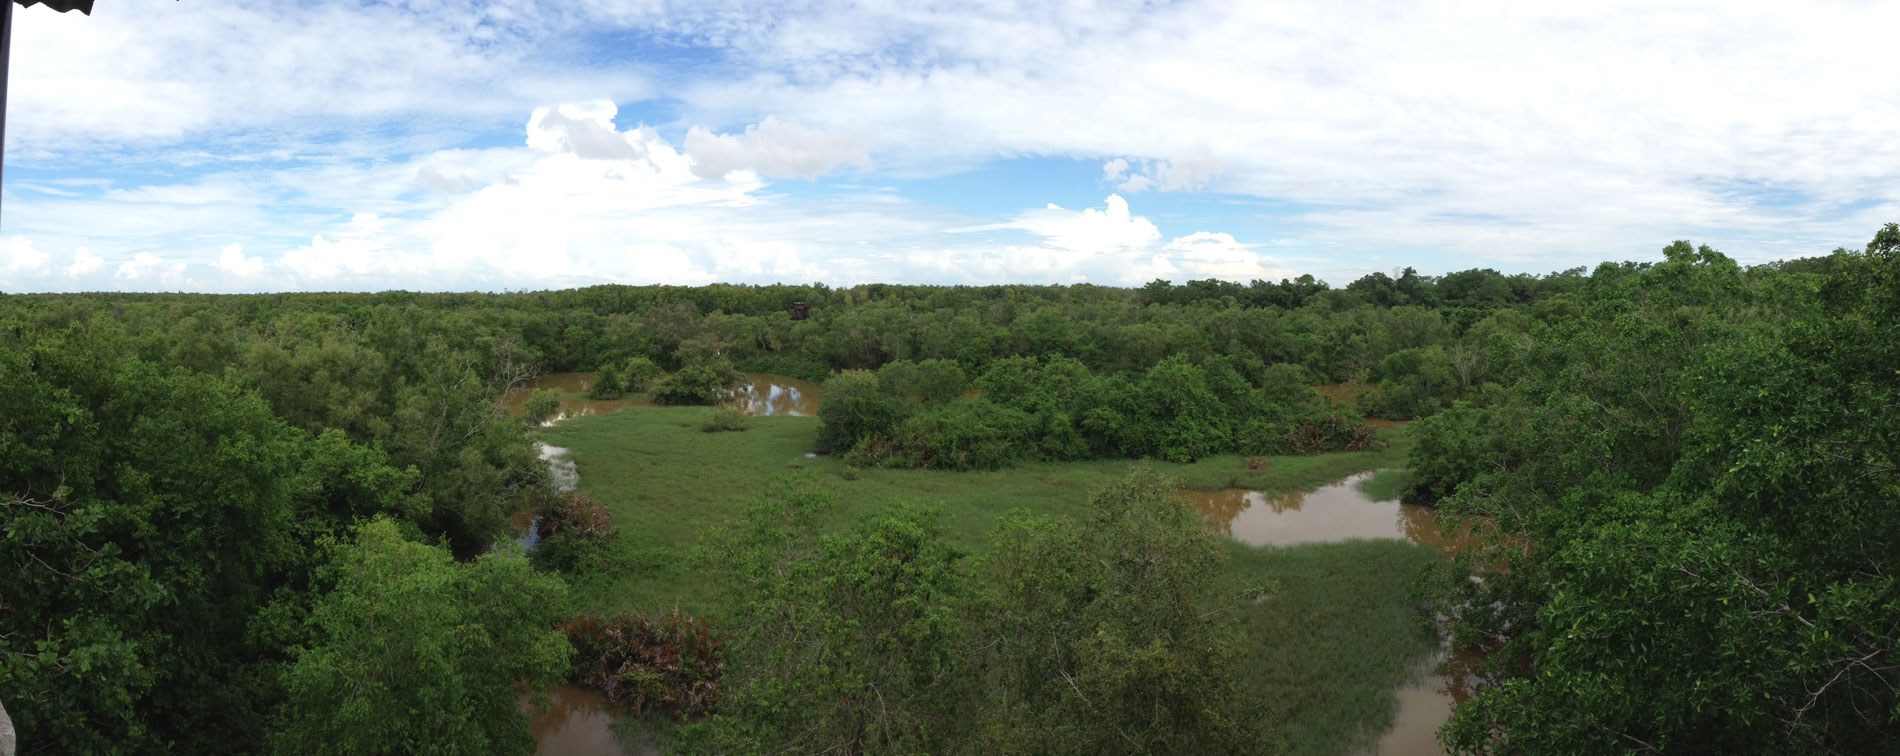 Kuala Selangor Nature Park overview